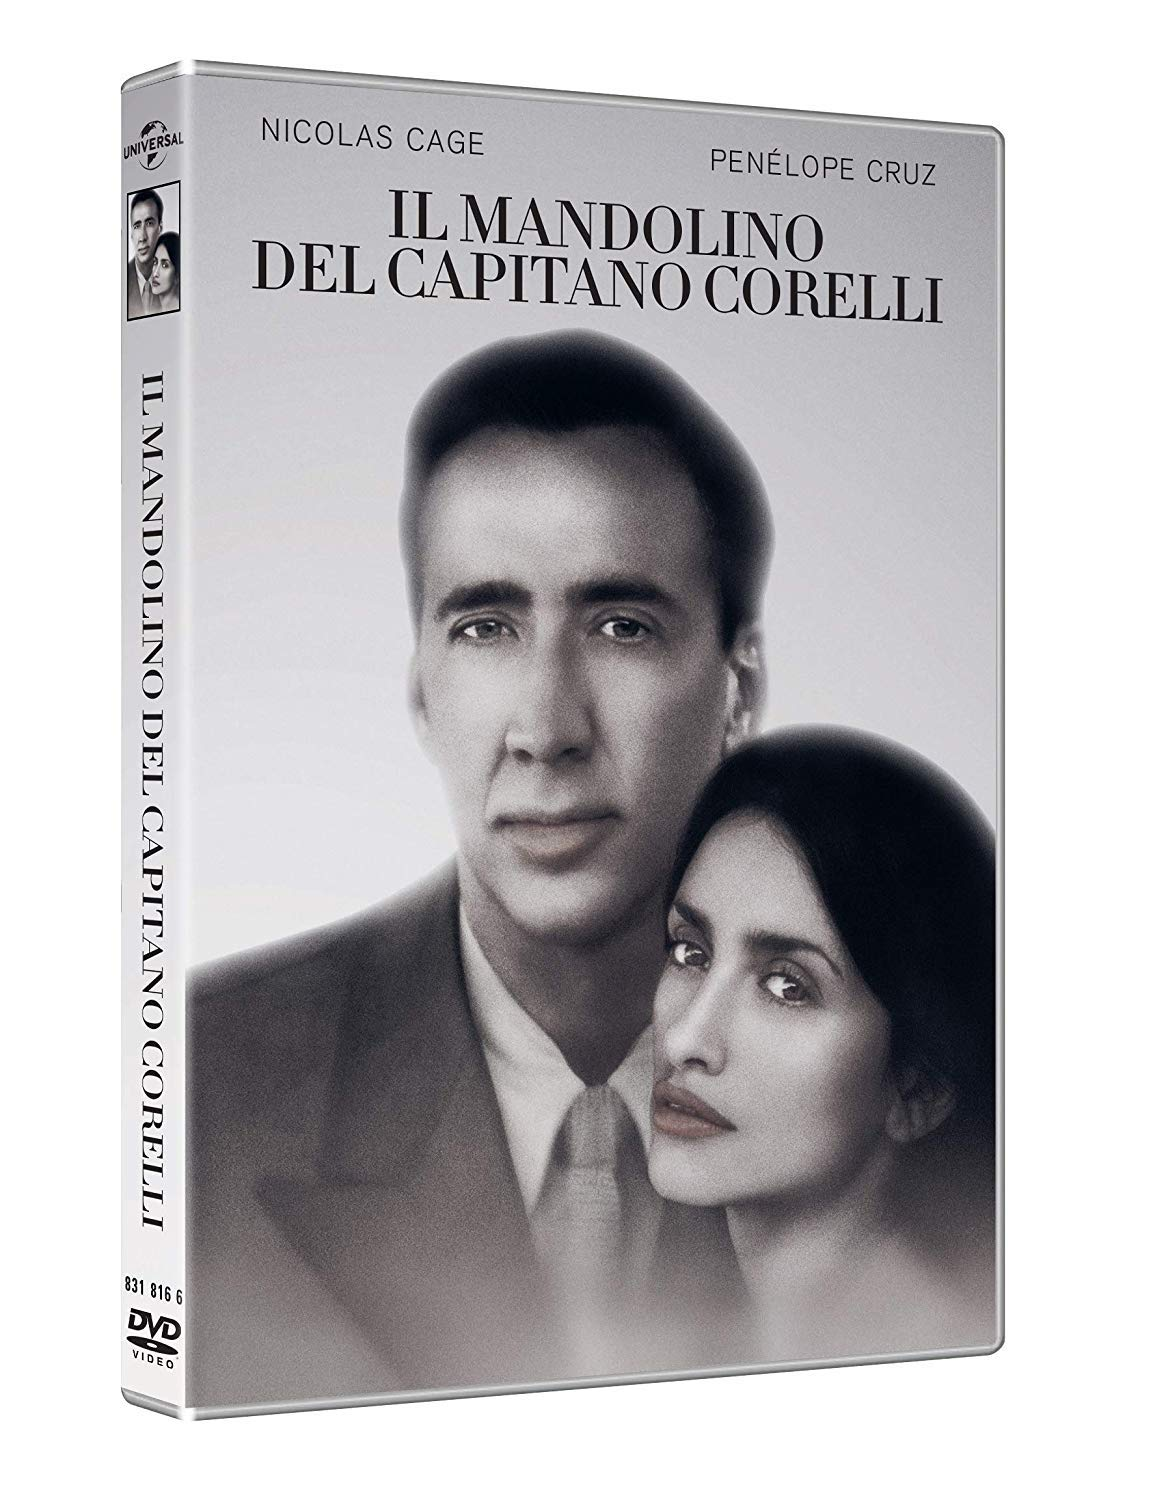 IL MANDOLINO DEL CAPITANO CORELLI (SAN VALENTINO COLLECTION) (DV